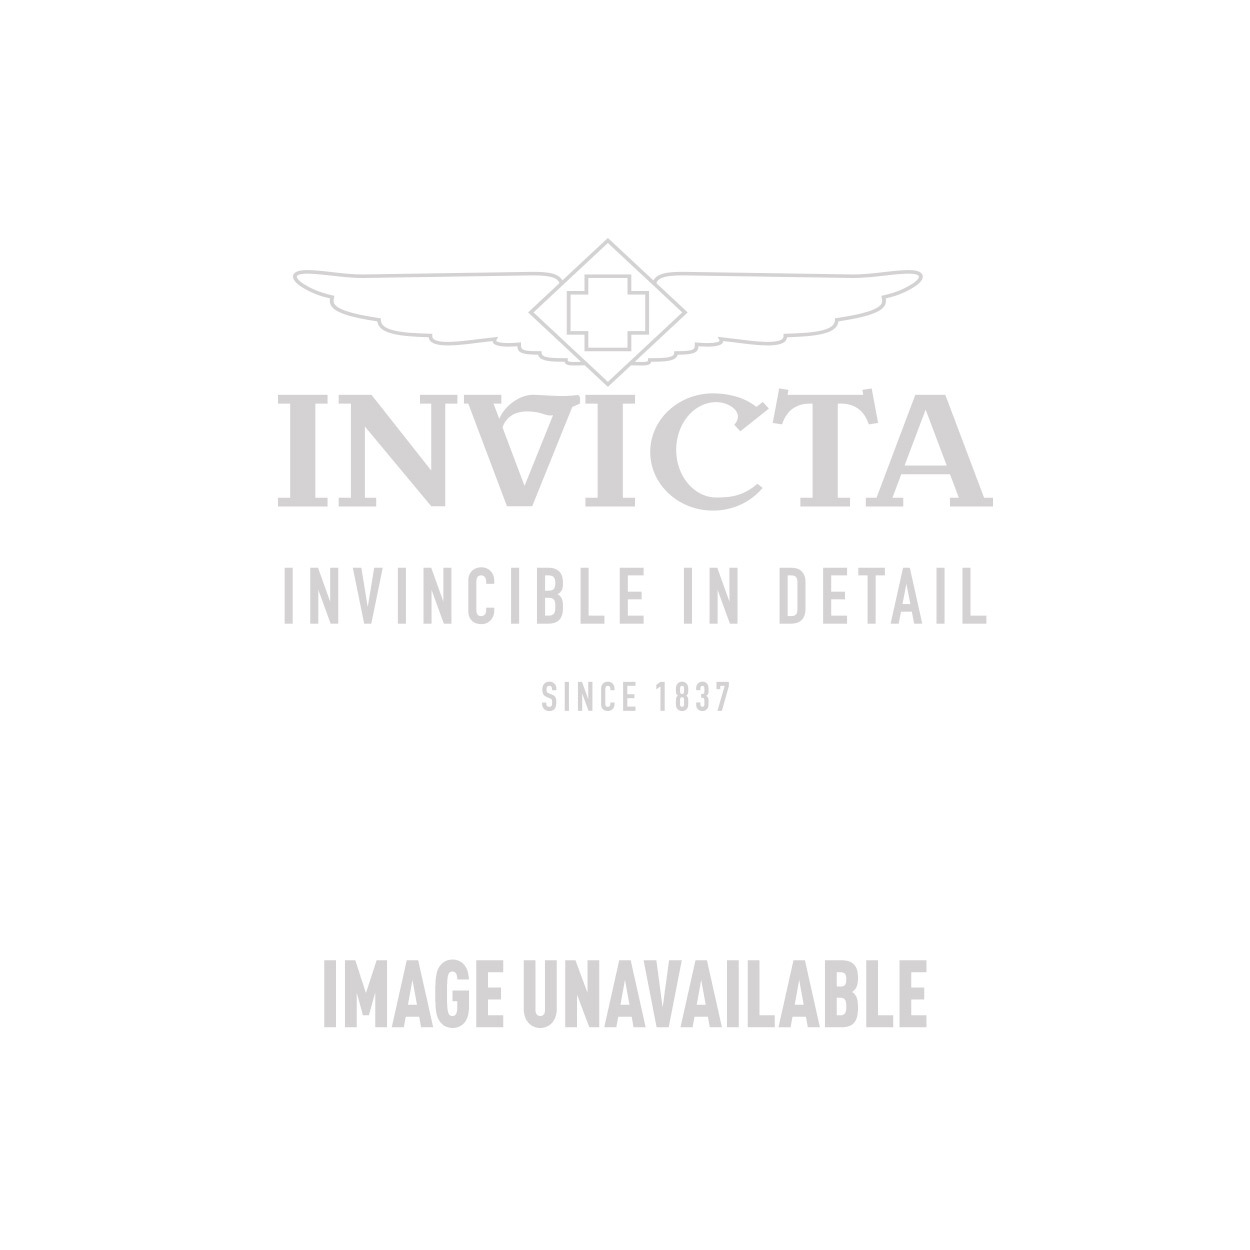 Invicta Bolt Swiss Made Quartz Watch - Stainless Steel case with Black tone Silicone band - Model 1226